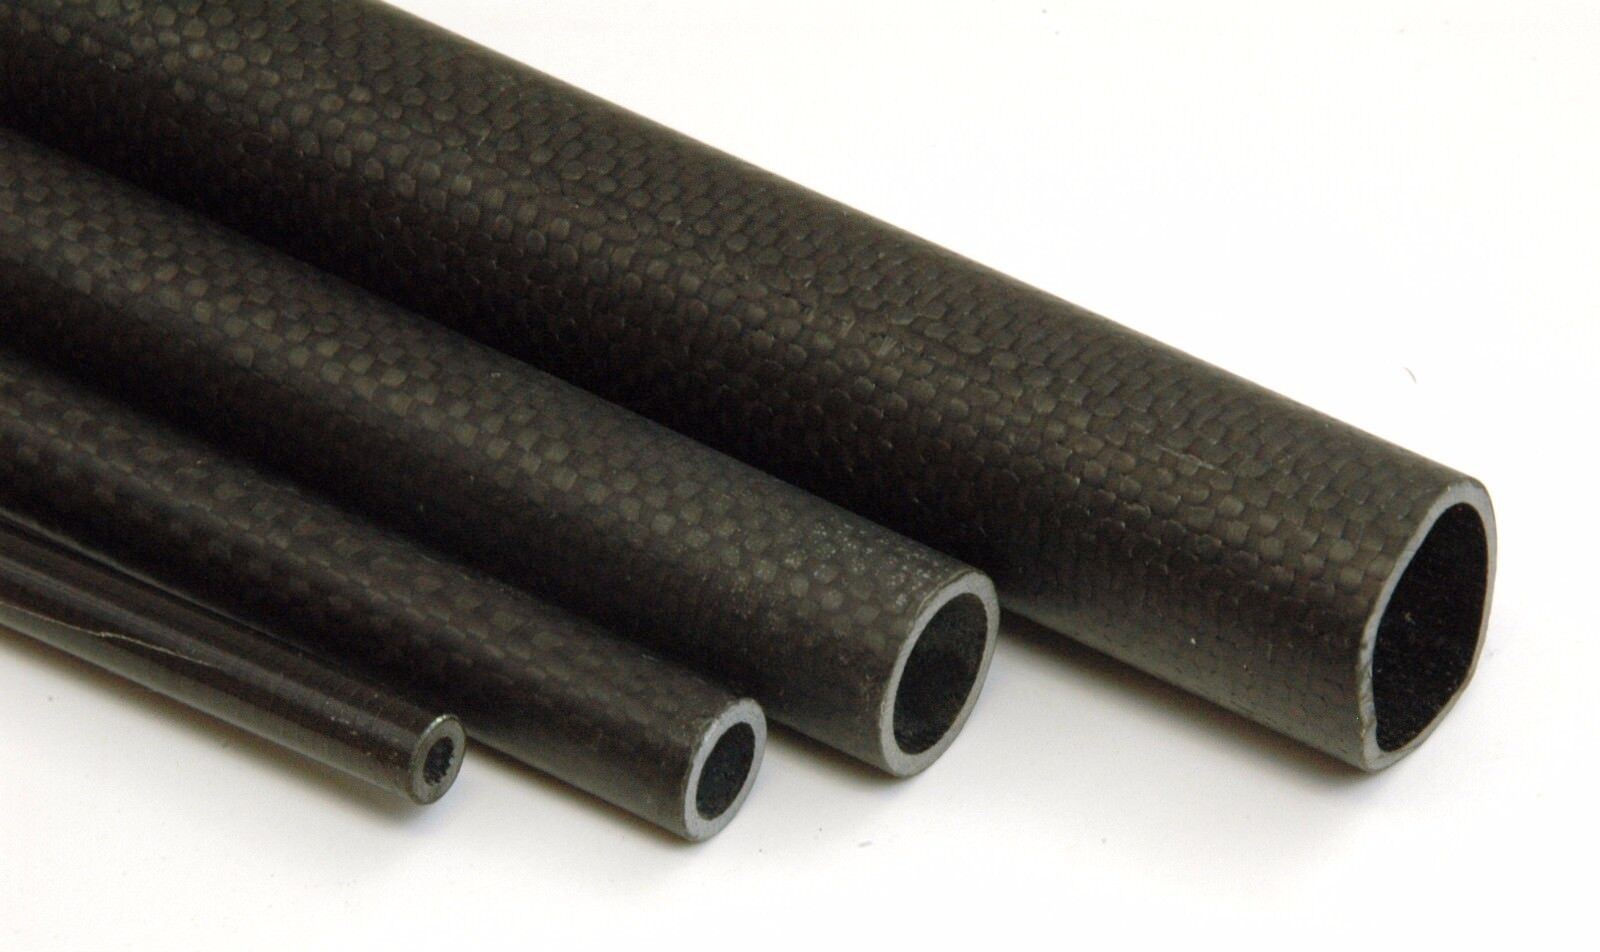 CARBON FIBRE TUBE 8mm, 12.5mm, 18mm, 25mm, 30mm OD 1.8m long